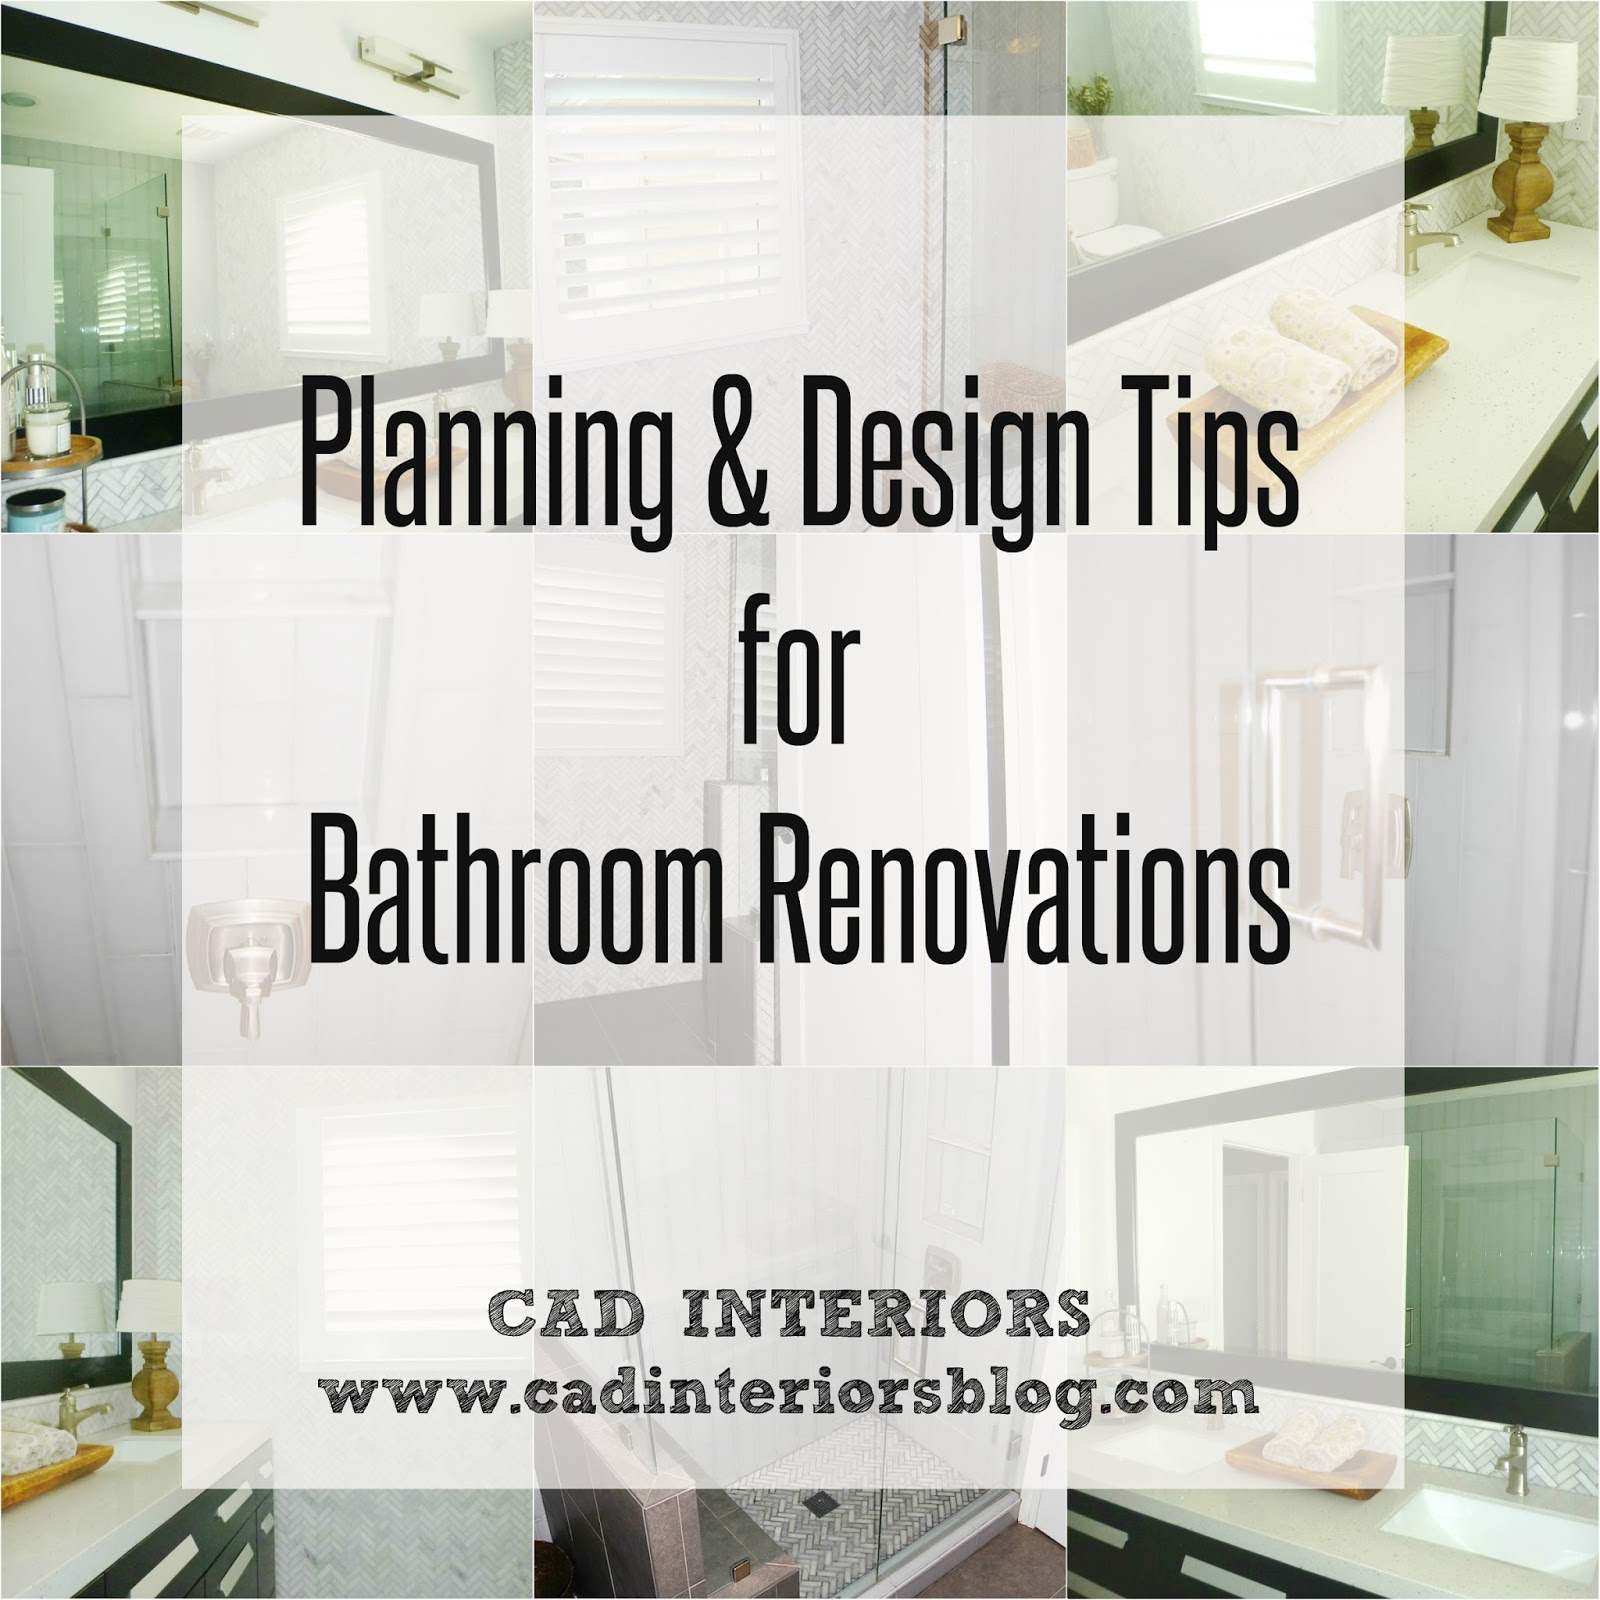 CAD INTERIORS bathroom remodel interior design modern transitional bathroom